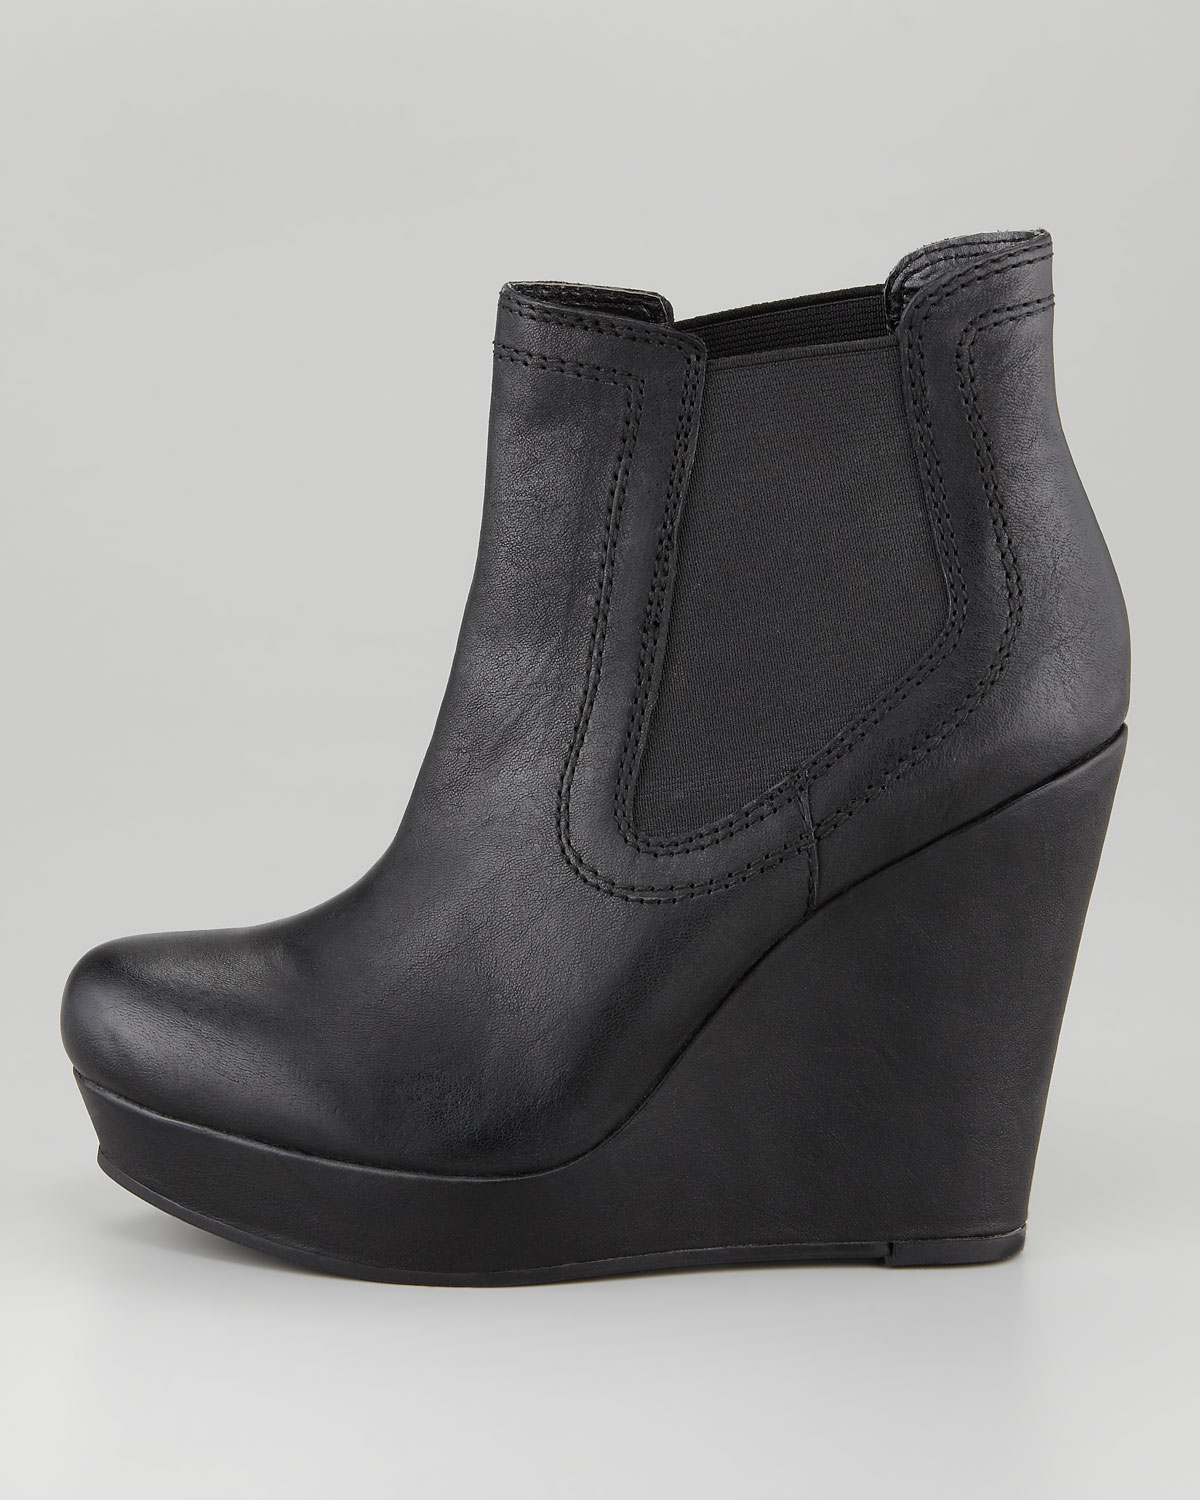 seychelles prime suspect wedge boot in black blk lyst